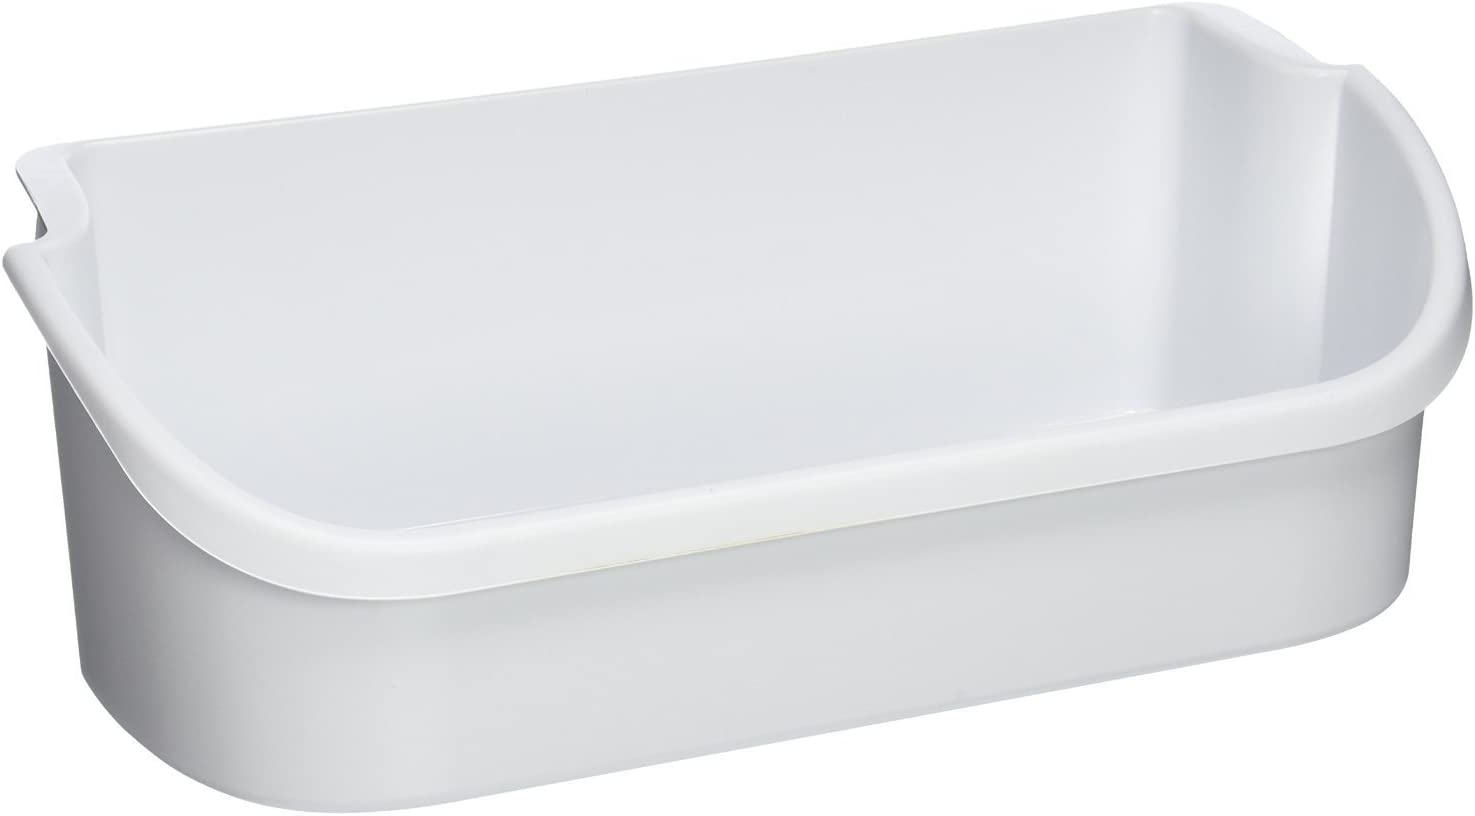 Compatible Door Bin for Frigidaire FRS26HF5AB4, Kenmore / Sears 25357384601, White Westinghouse WRS6R3EW8, Frigidaire FRS6R5EMB8 Refrigerator